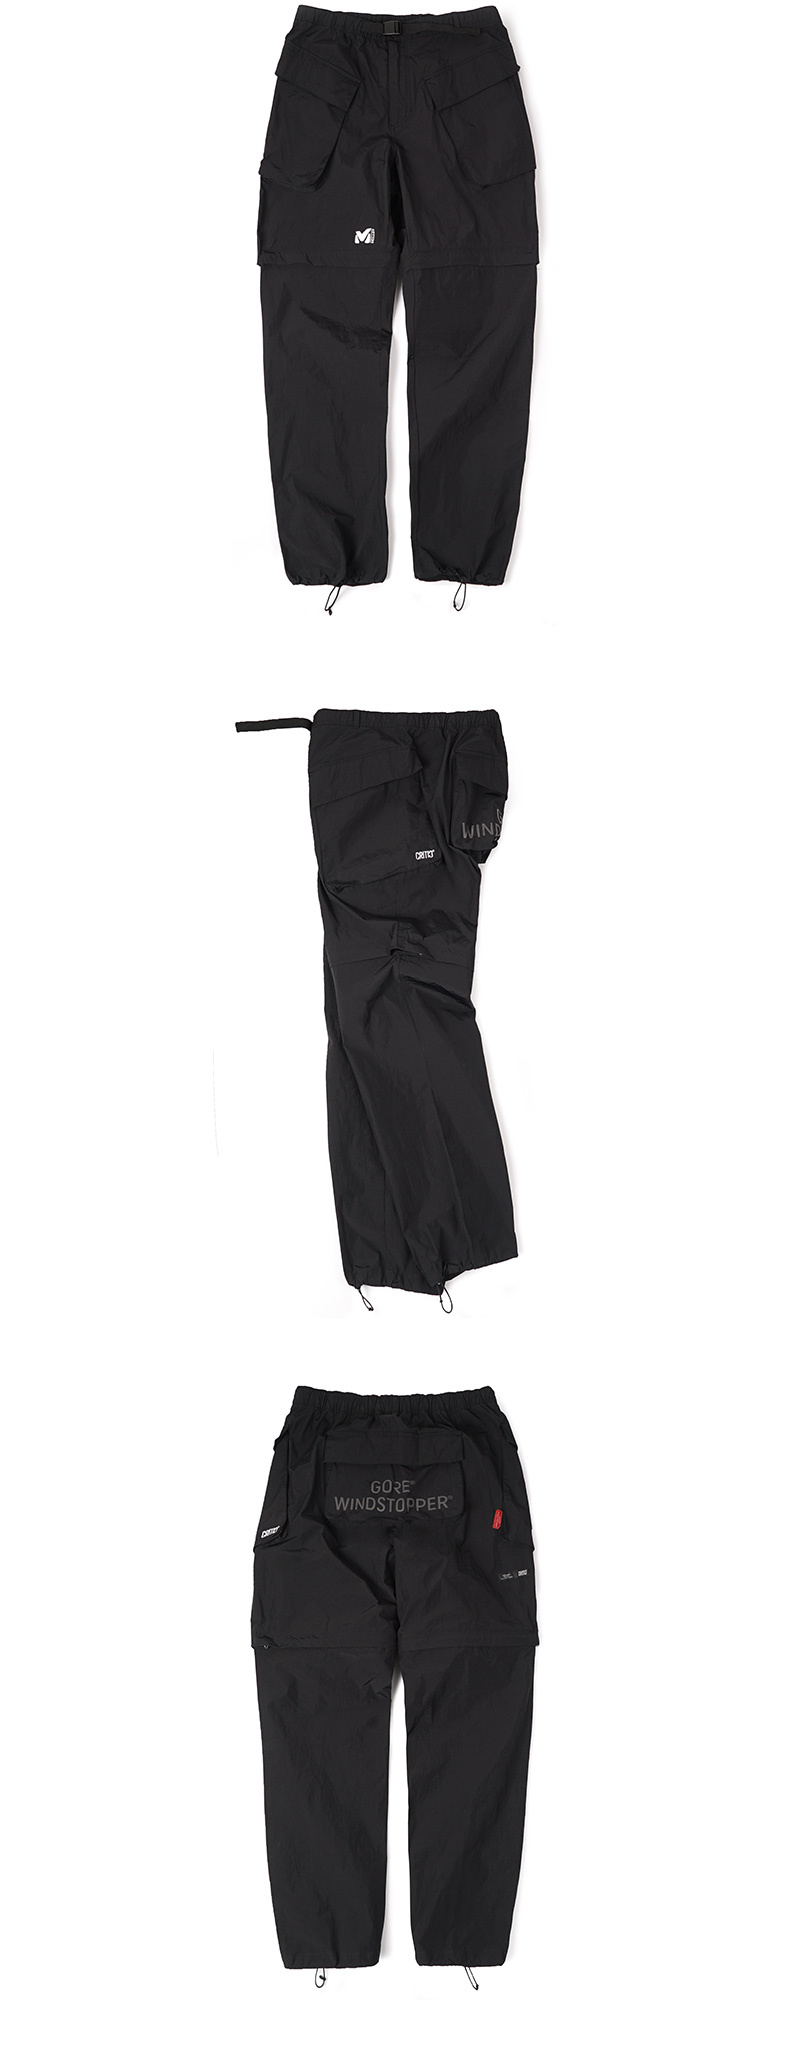 밀레 클래식(MILLET CLASSIC) MILLET X CRITIC WINDSTOPPER PANTS_BLACK